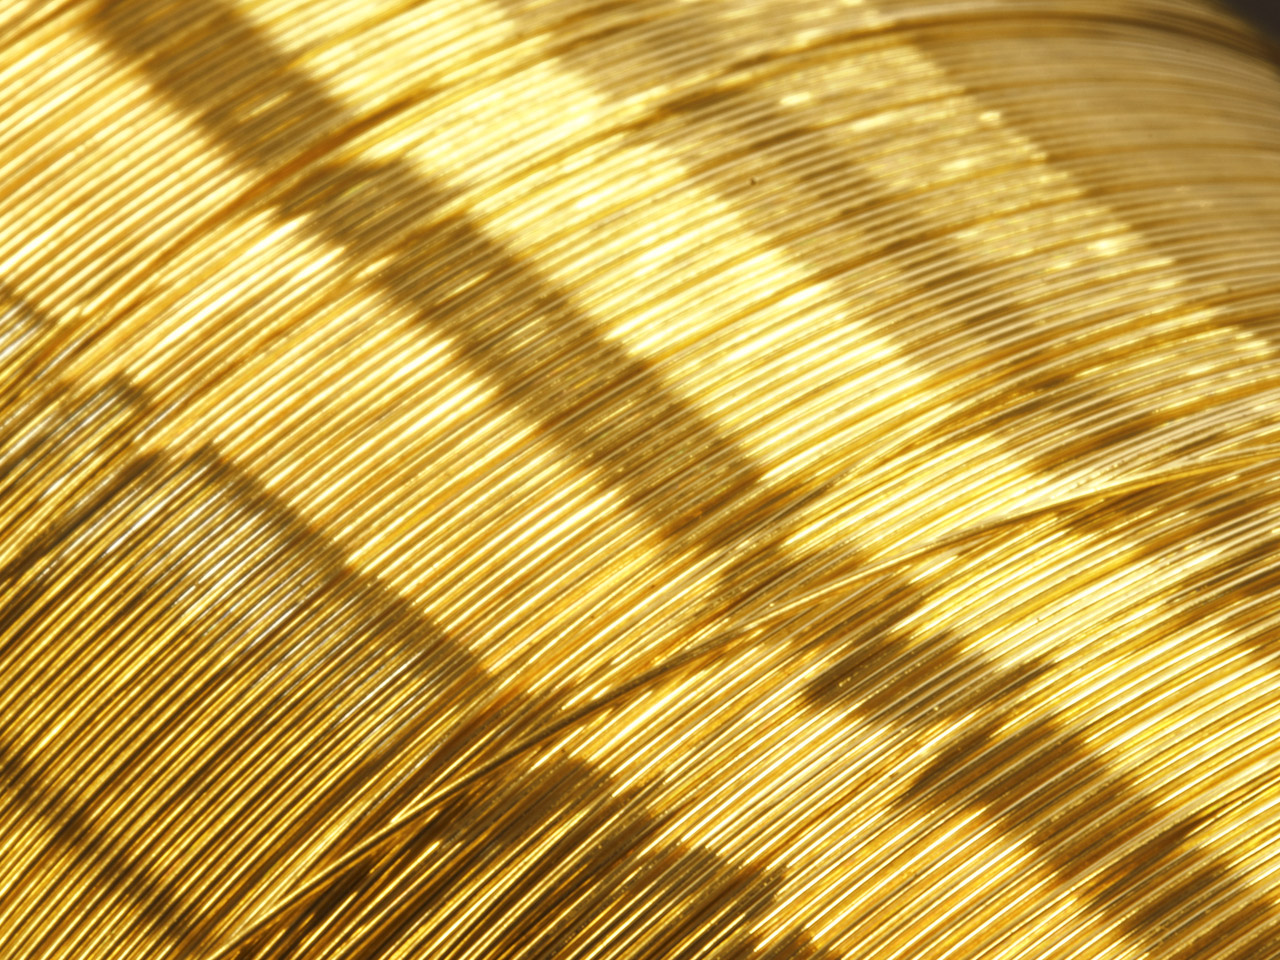 Q9999 Fine Gold Wire 1.00mm Fully  Annealed, 50gm Reels